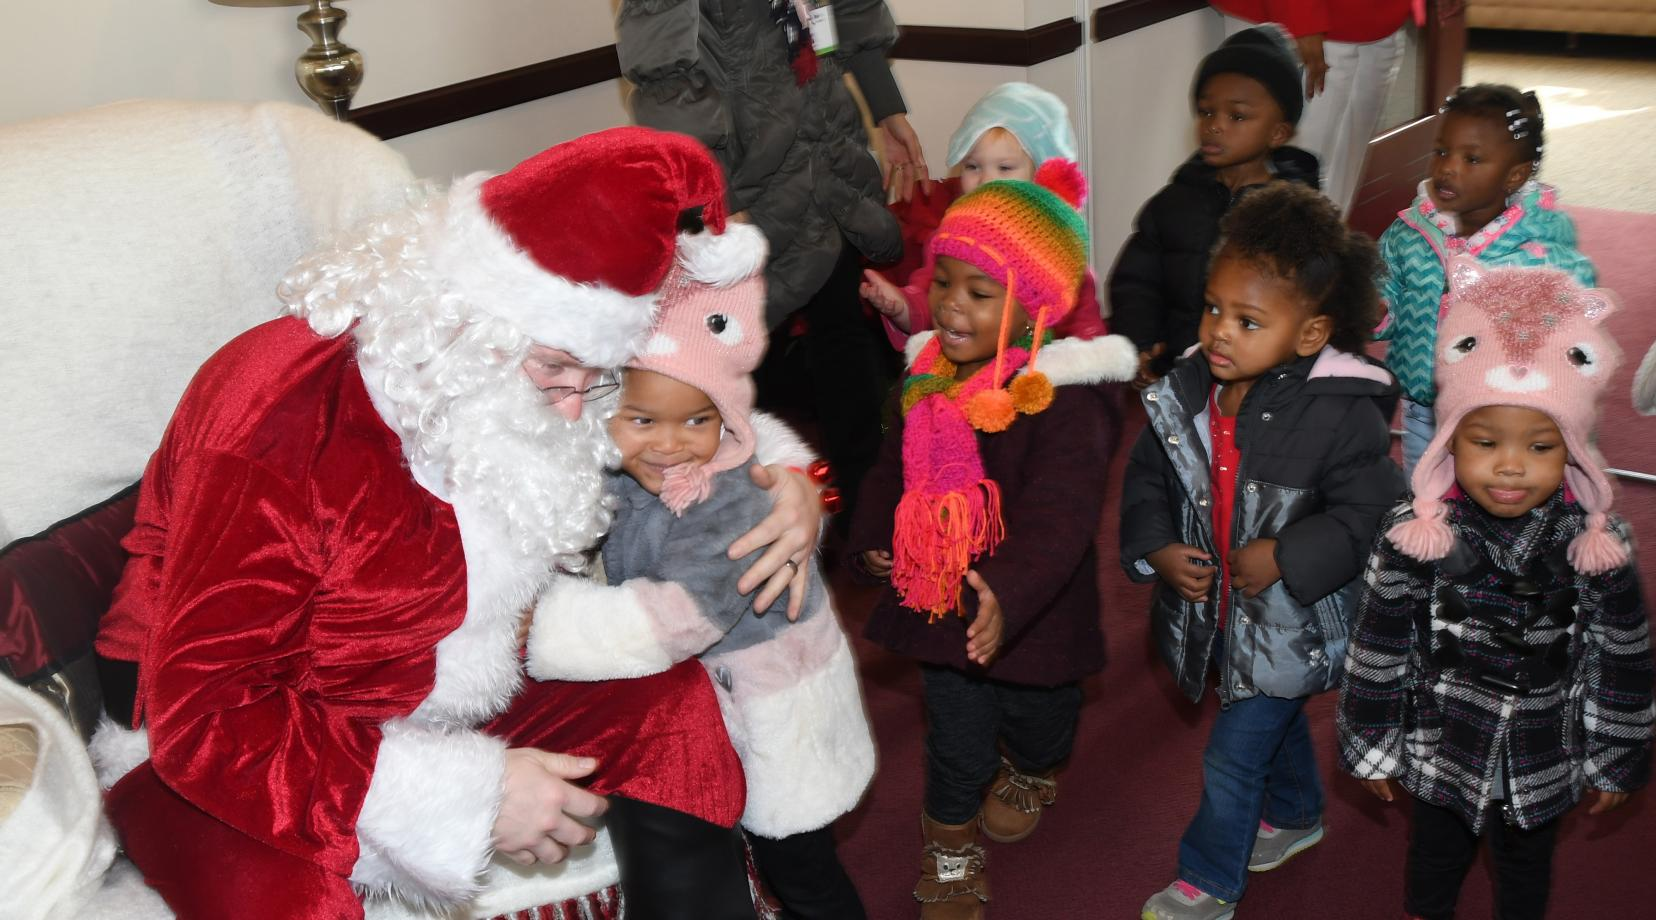 Santa Claus (portrayed by guess who?) greets the young ones of the Child Development Lab in the President's Office on Dec. 13.